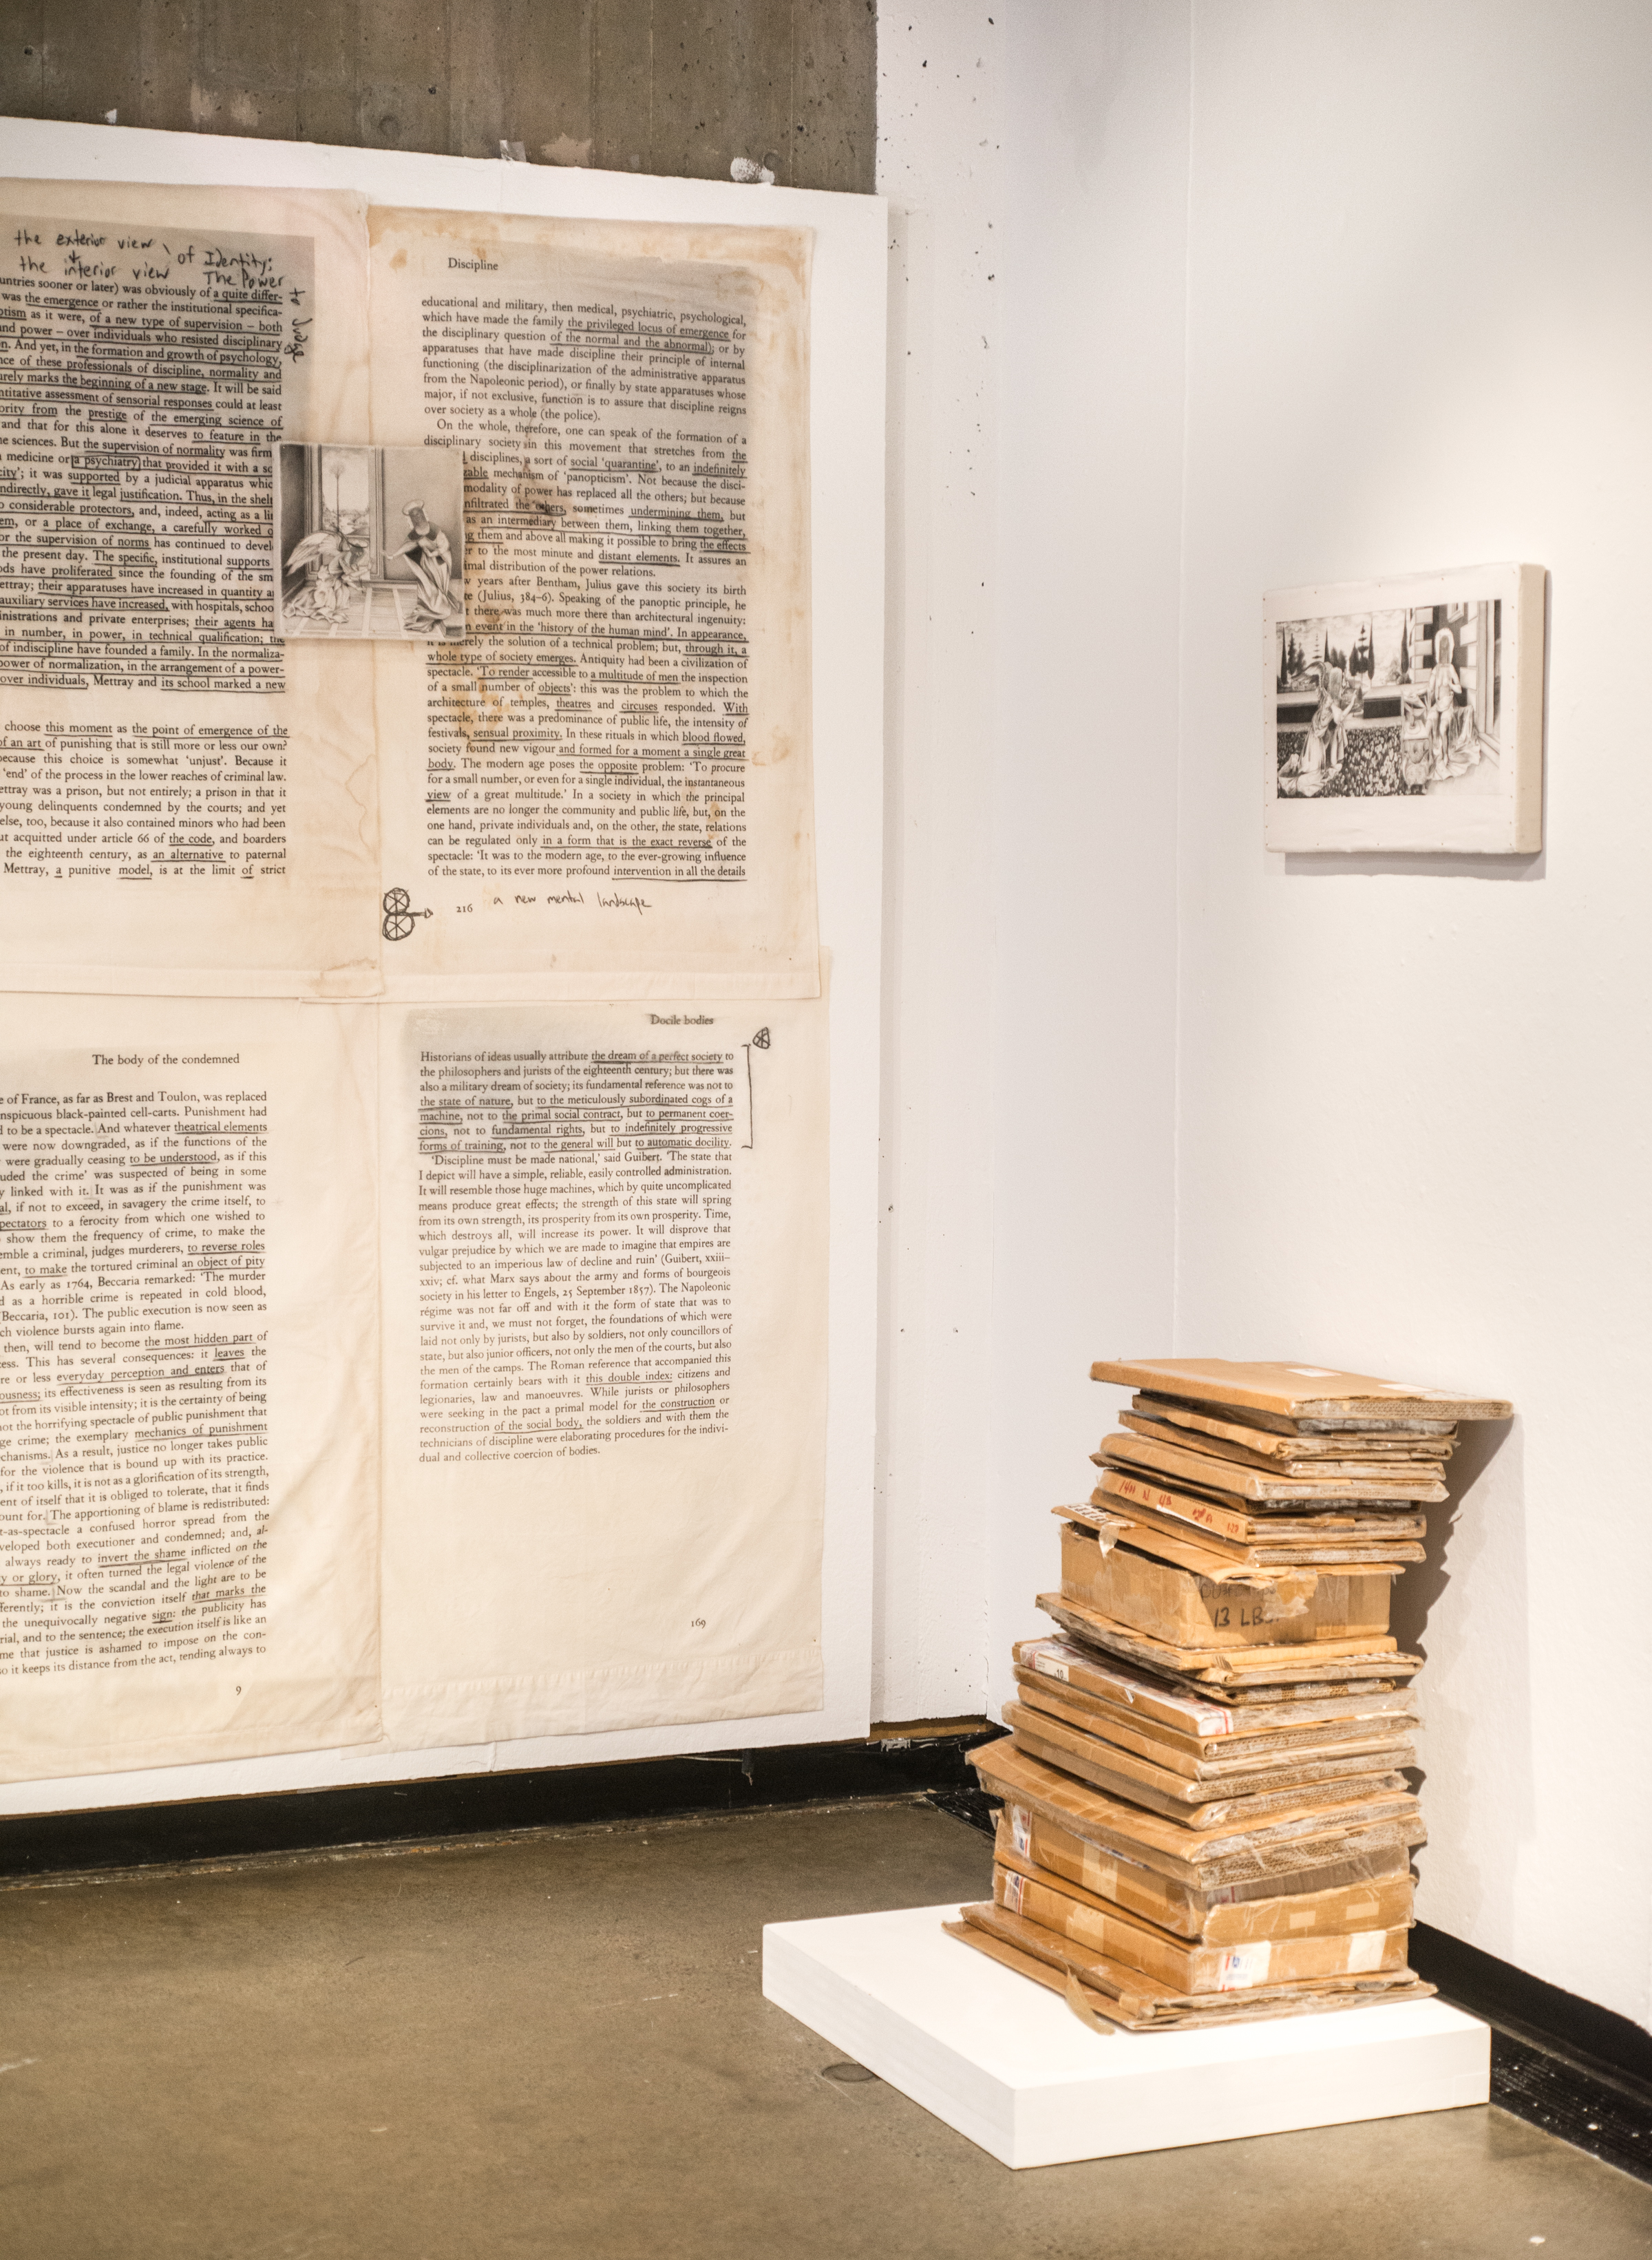 Jesse Krimes' work, including the shipping boxes that were used to smuggle his work out of prison.